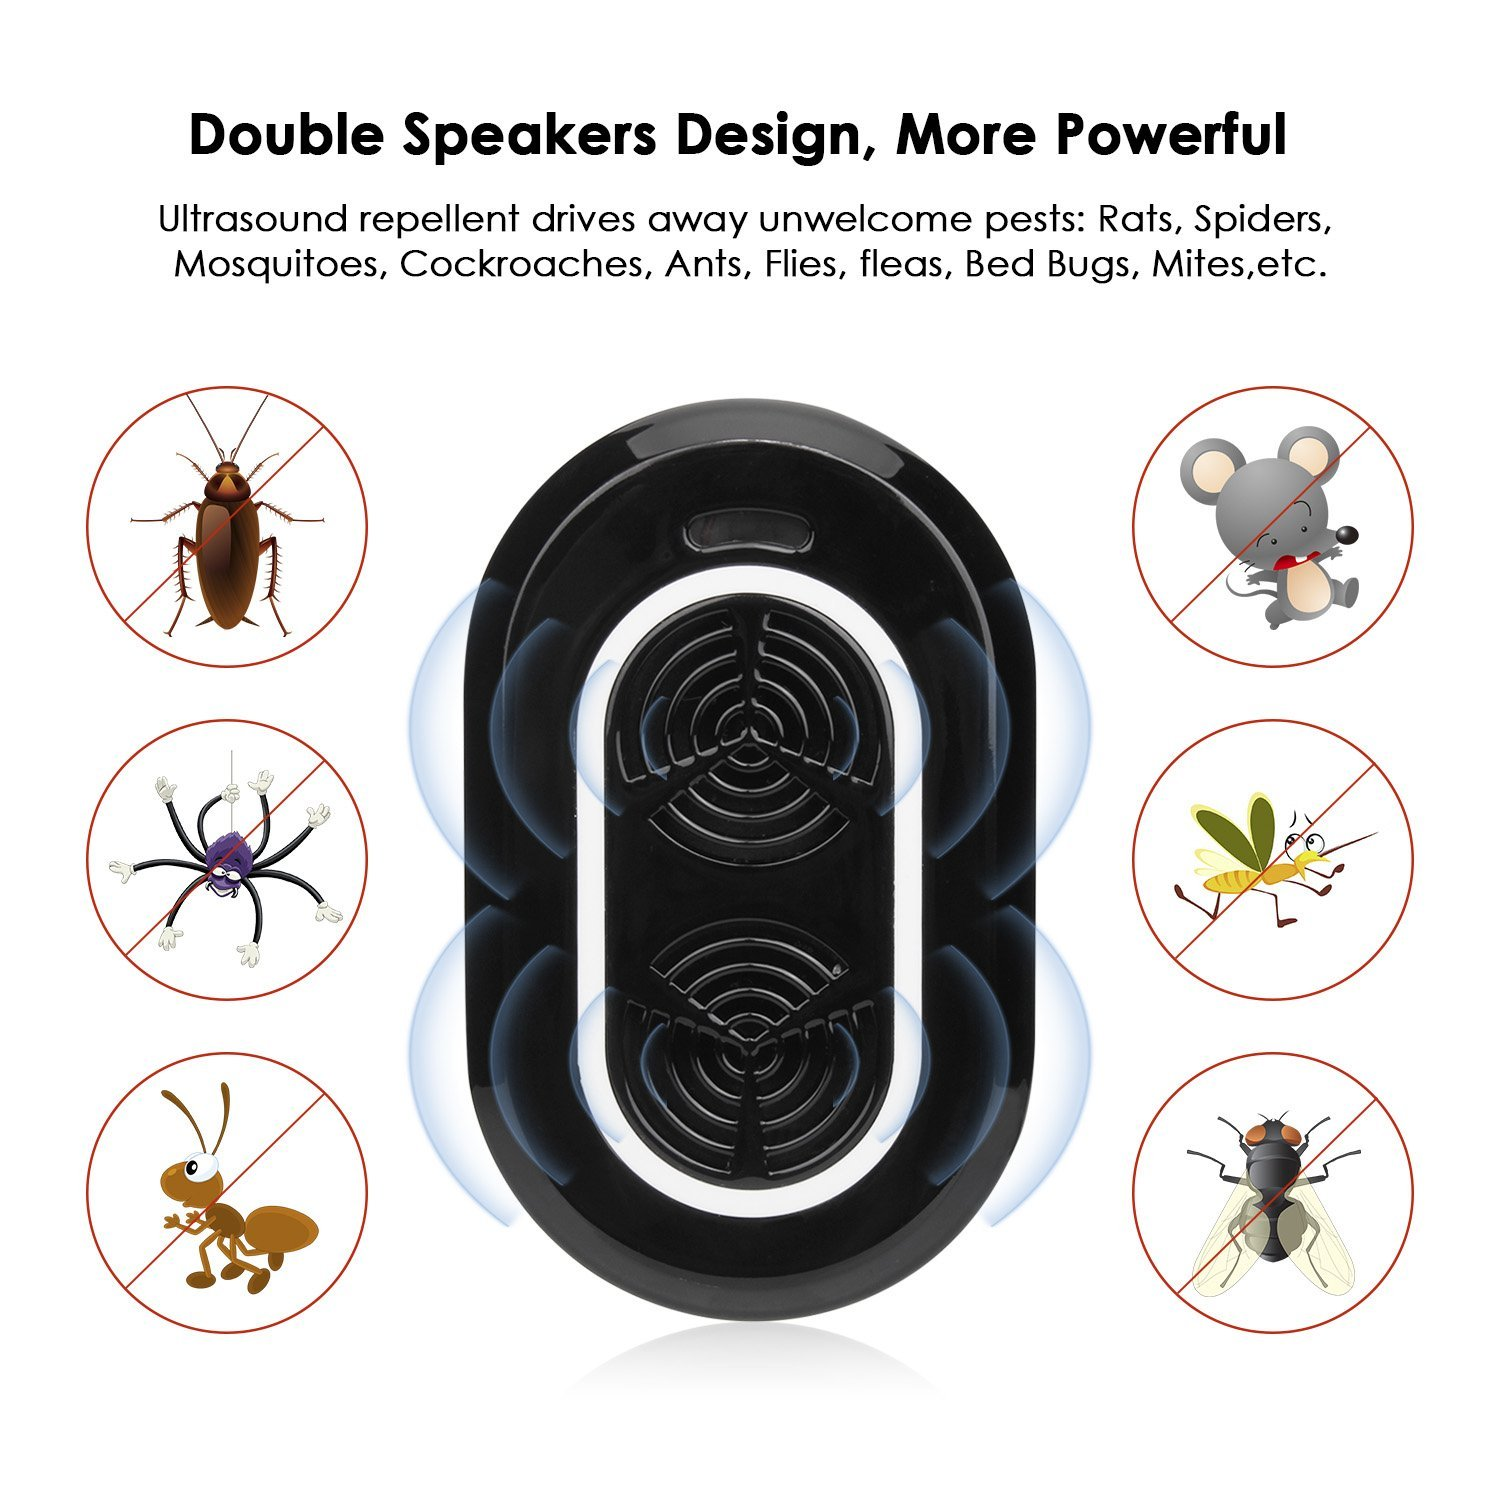 Loskii BS-710 Ultrasonic Pest Repeller Electronic Pest Control Repel Mouse Bugs Mosquitoes Roaches Killer